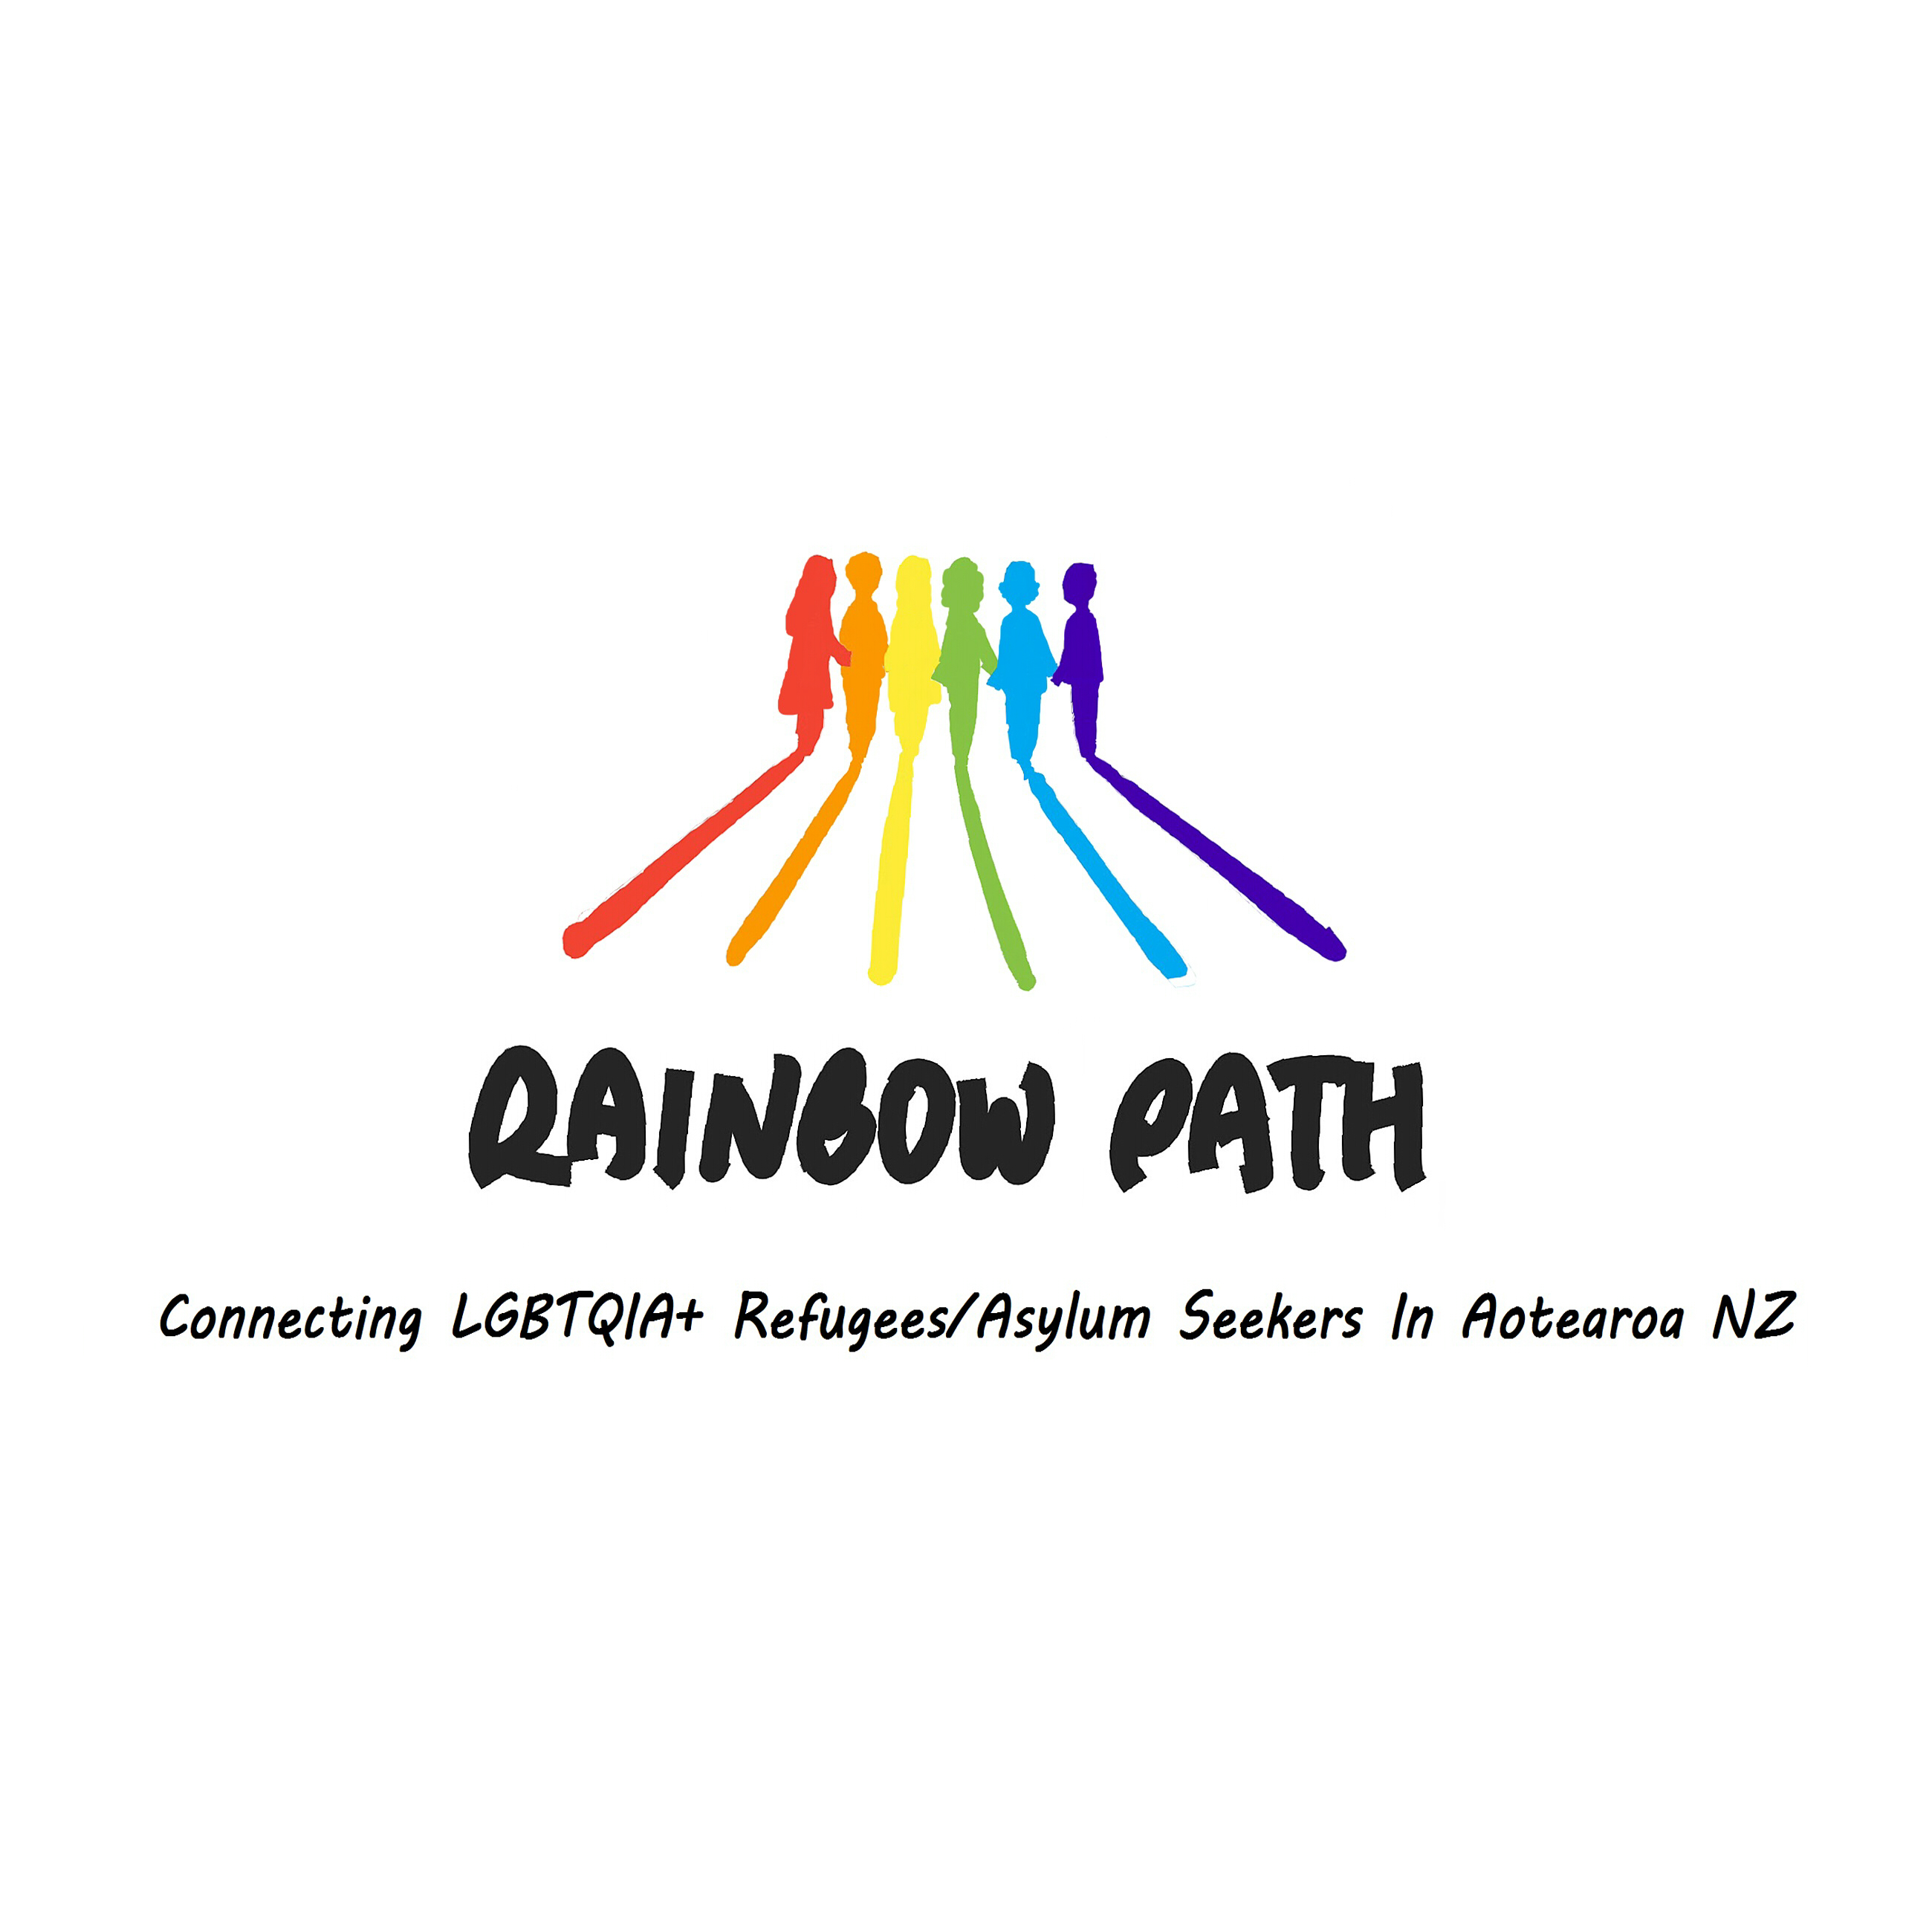 Rainbow Path NZ